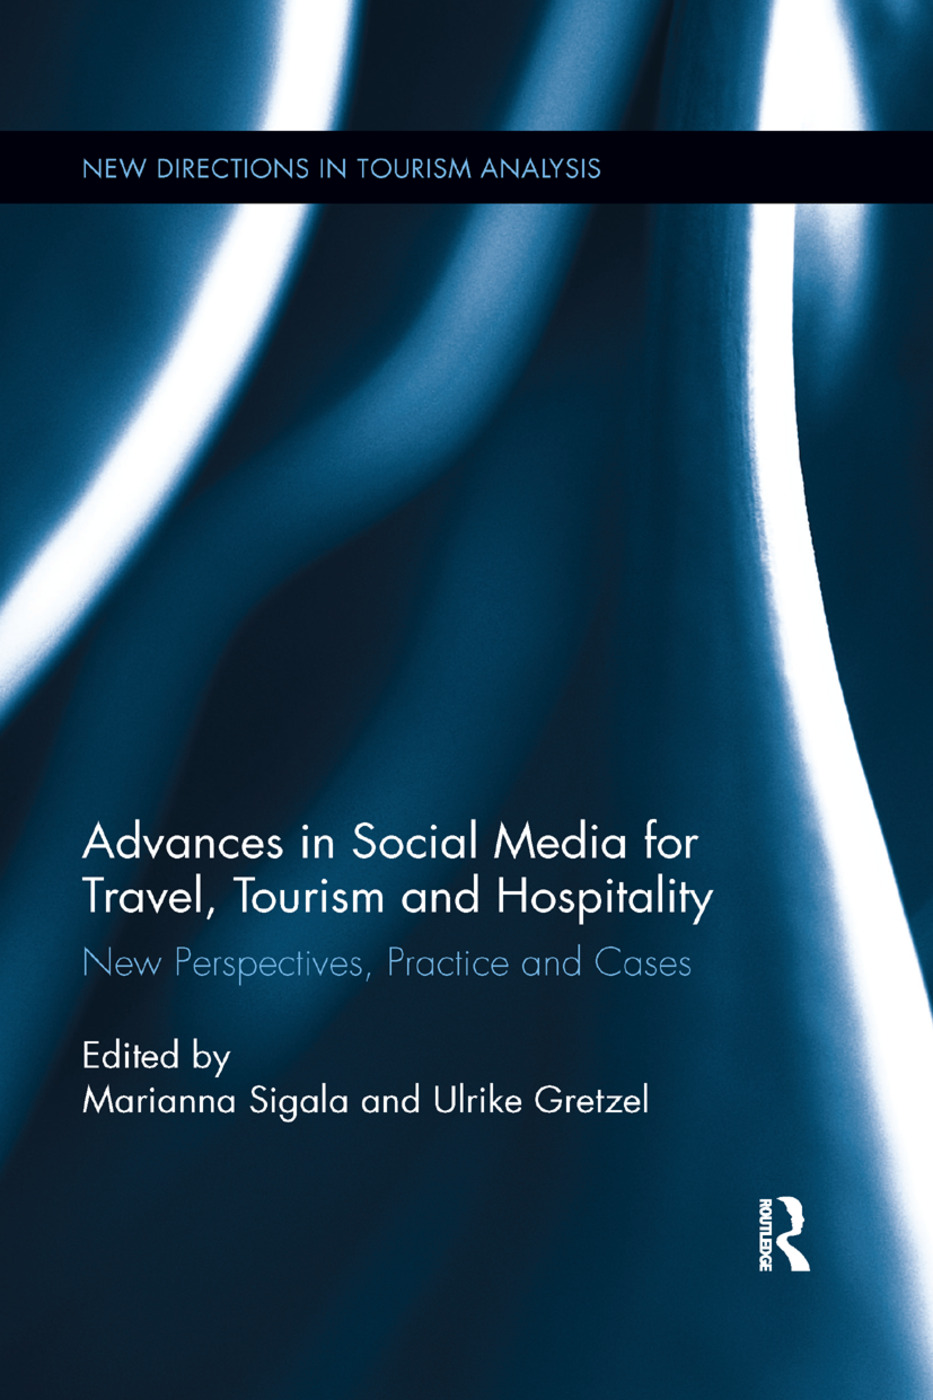 Advances in Social Media for Travel, Tourism and Hospitality: New Perspectives, Practice and Cases book cover